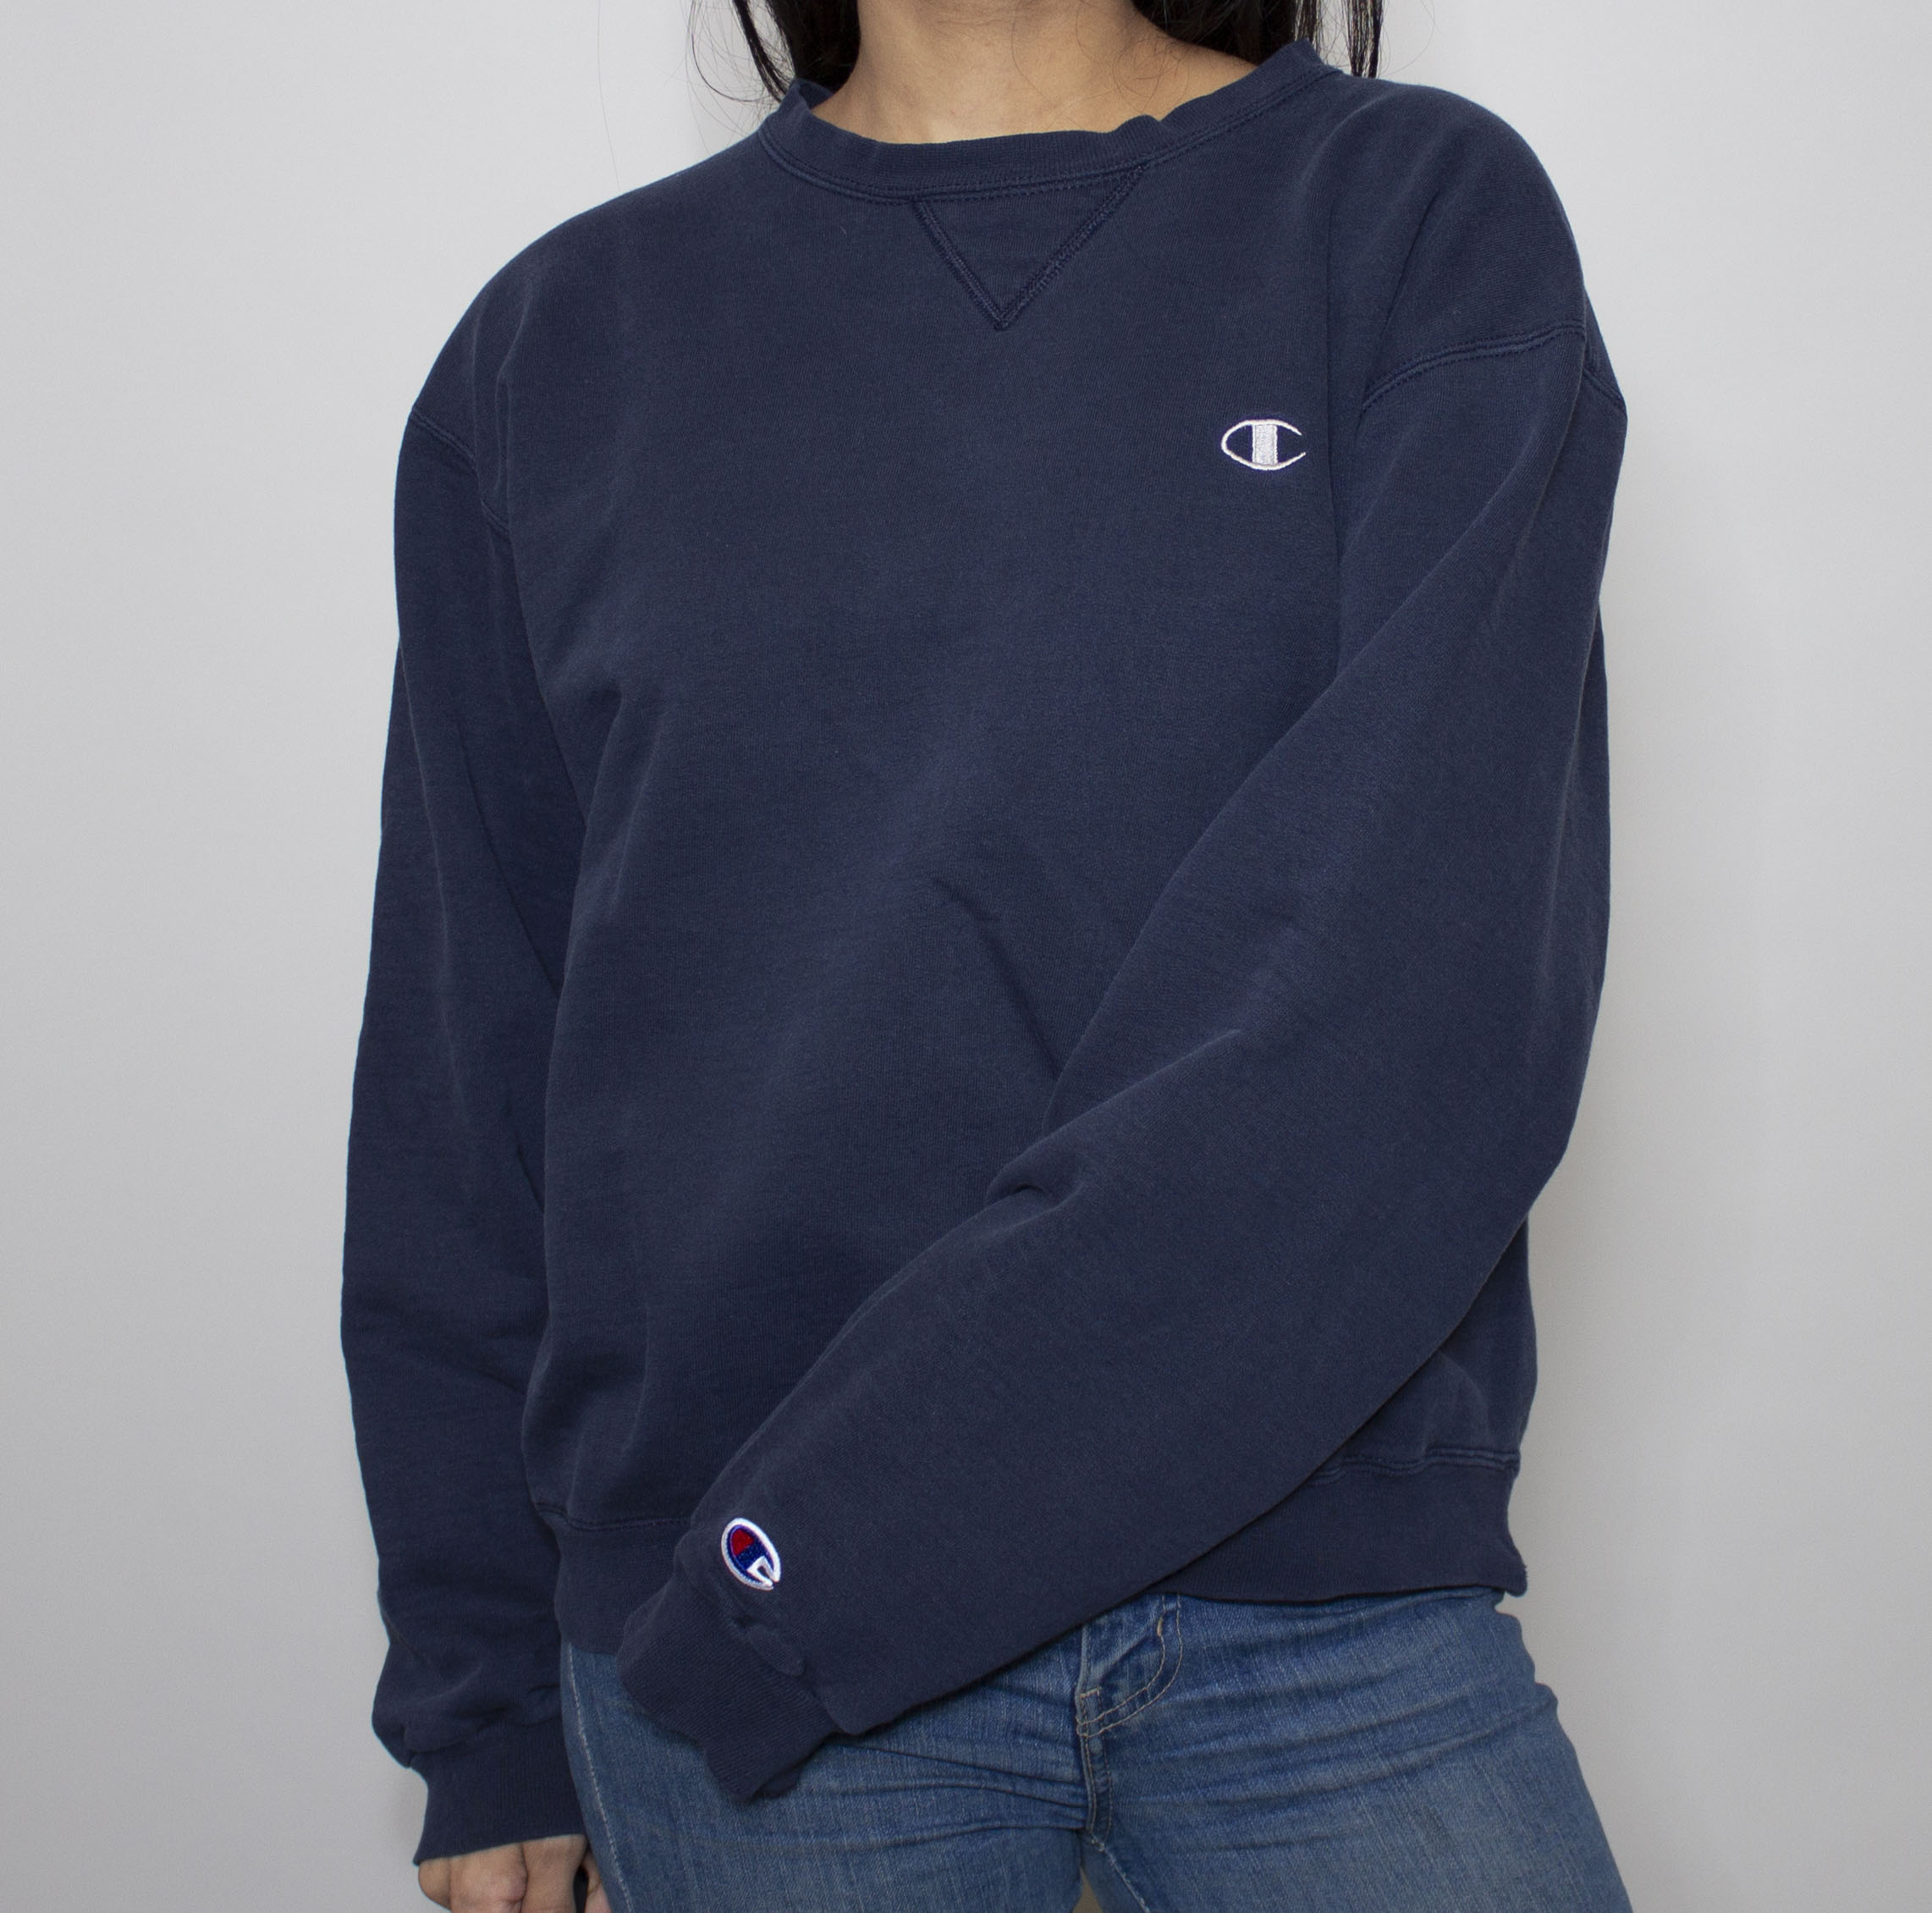 Navy Champion Crewneck